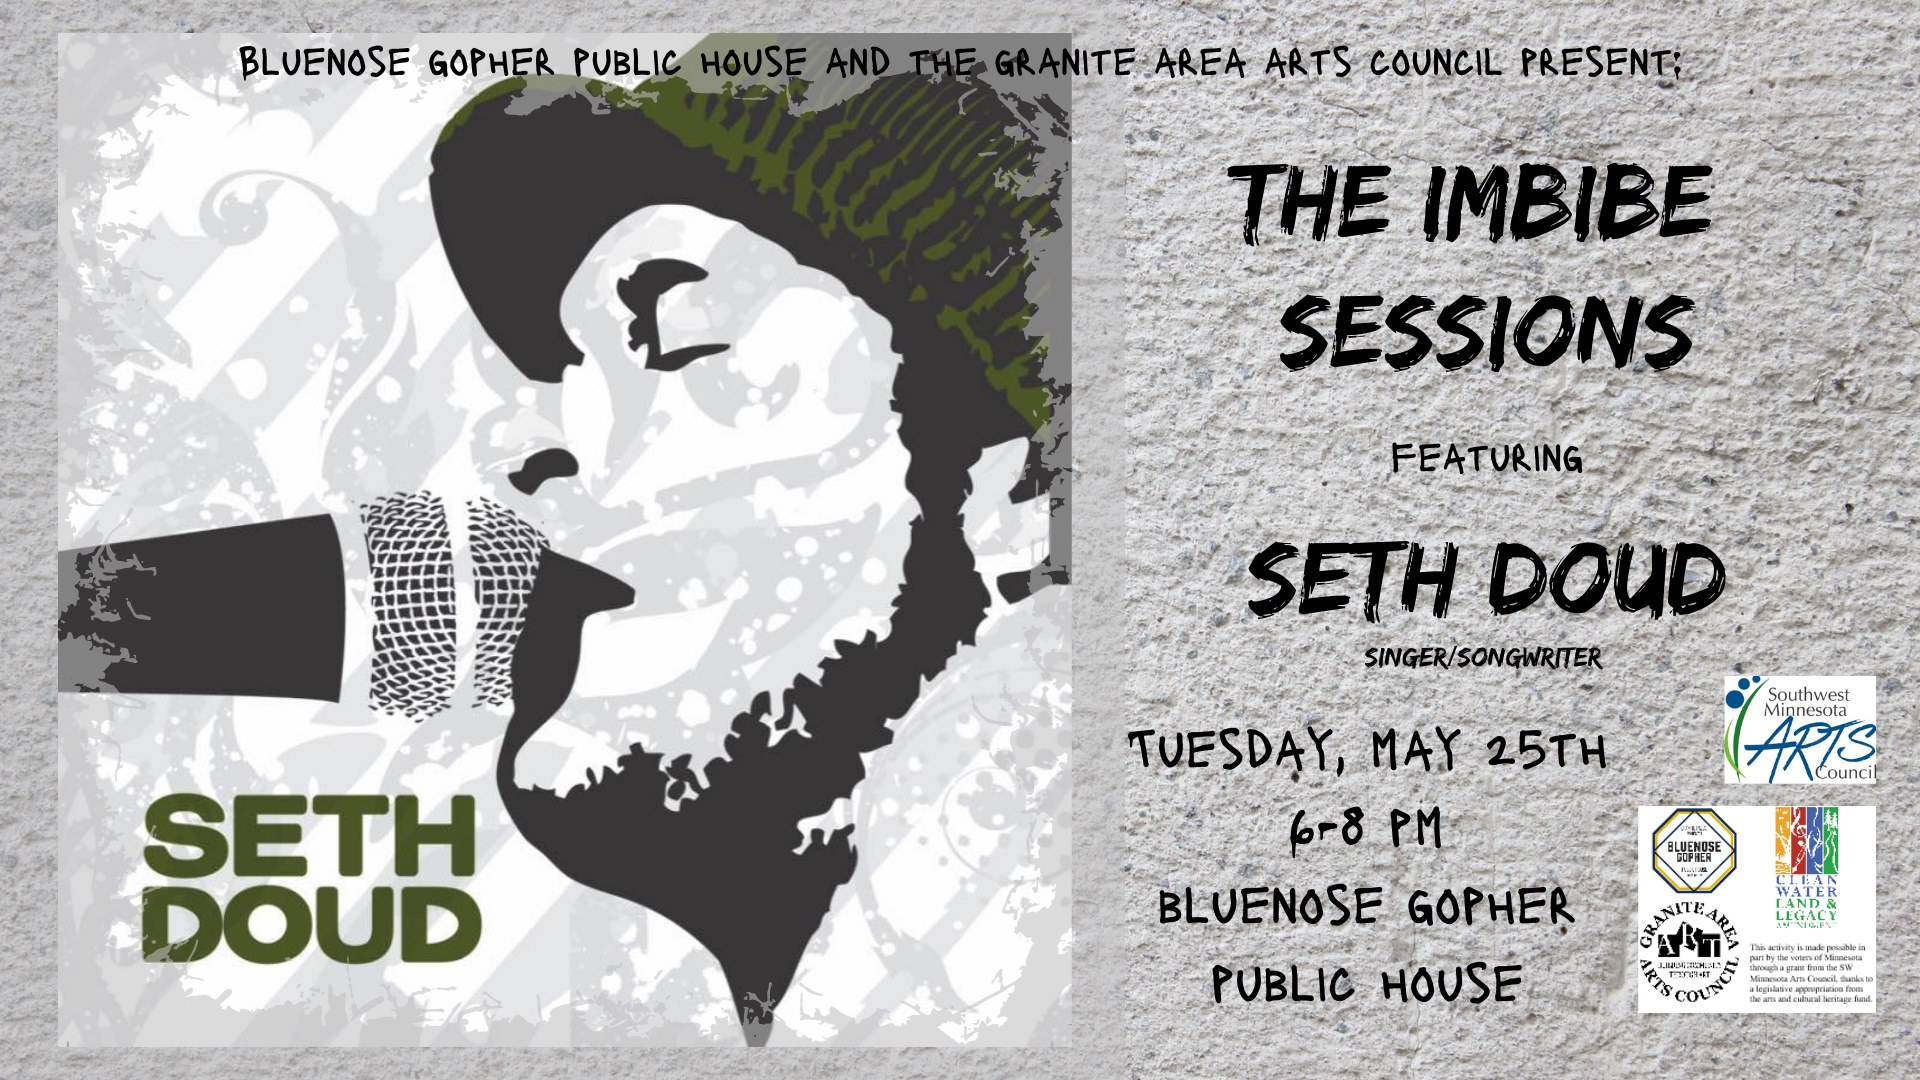 Bluenose Gopher Public House and the Granite Area Arts Council Presents: The Imbibe Sessions Featuring Seth Doud, singer/songwriter. Tuesday, May 25th, 6-8 pm, Bluenose Gopher Public House.